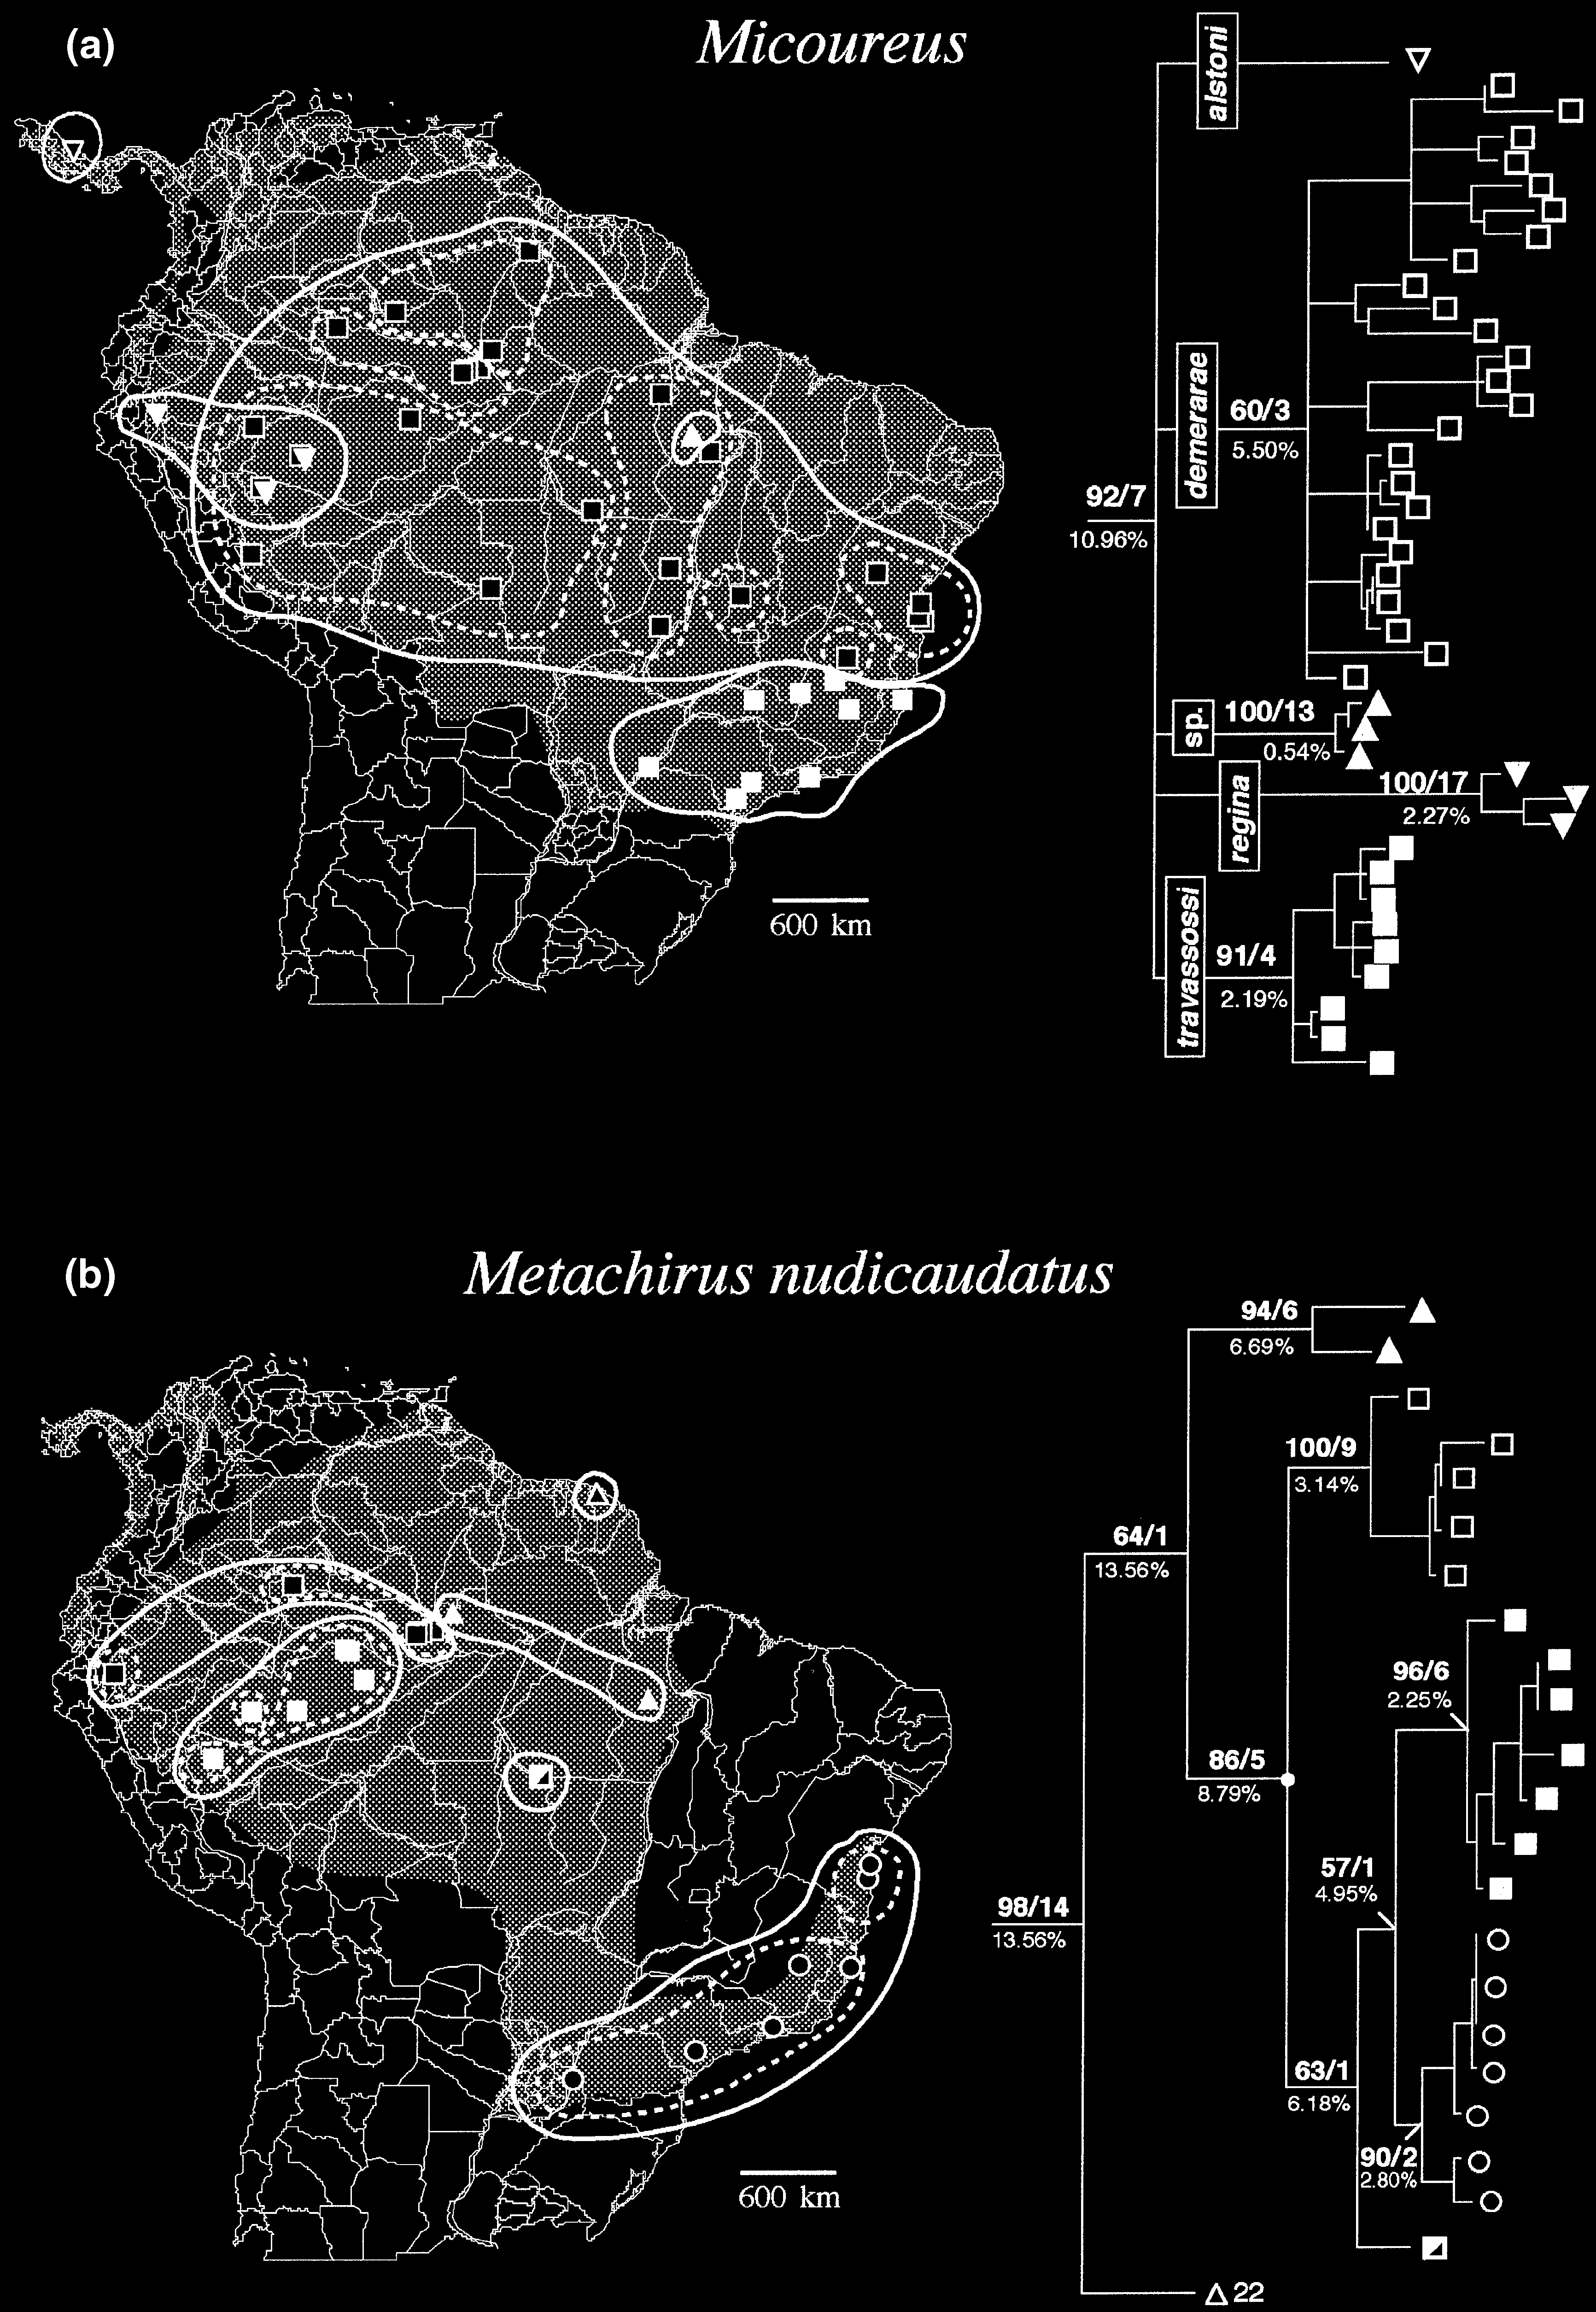 76 L. P. Costa Figure 4 Maps of the range and geographical distribution of the samples of species of Micoureus (a) and Metachirus nudicaudatus (b).